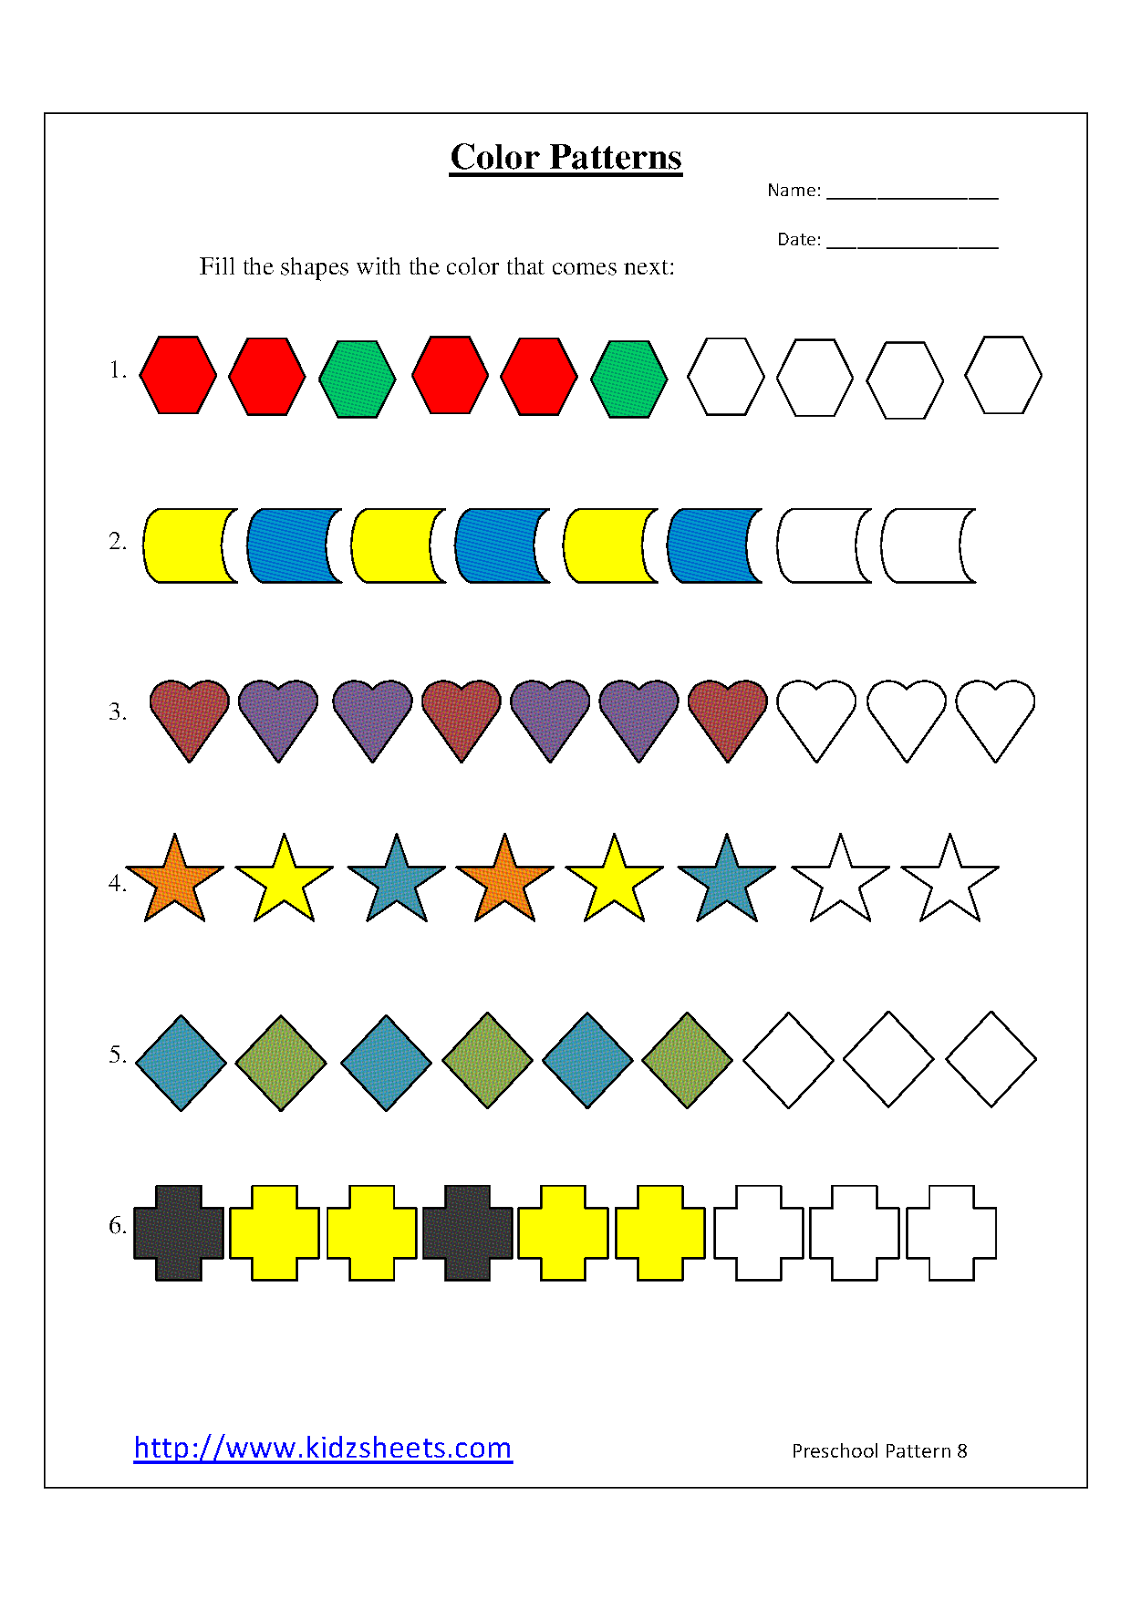 Kidz Worksheets Preschool Color Patterns Worksheet8 – Preschool Pattern Worksheets